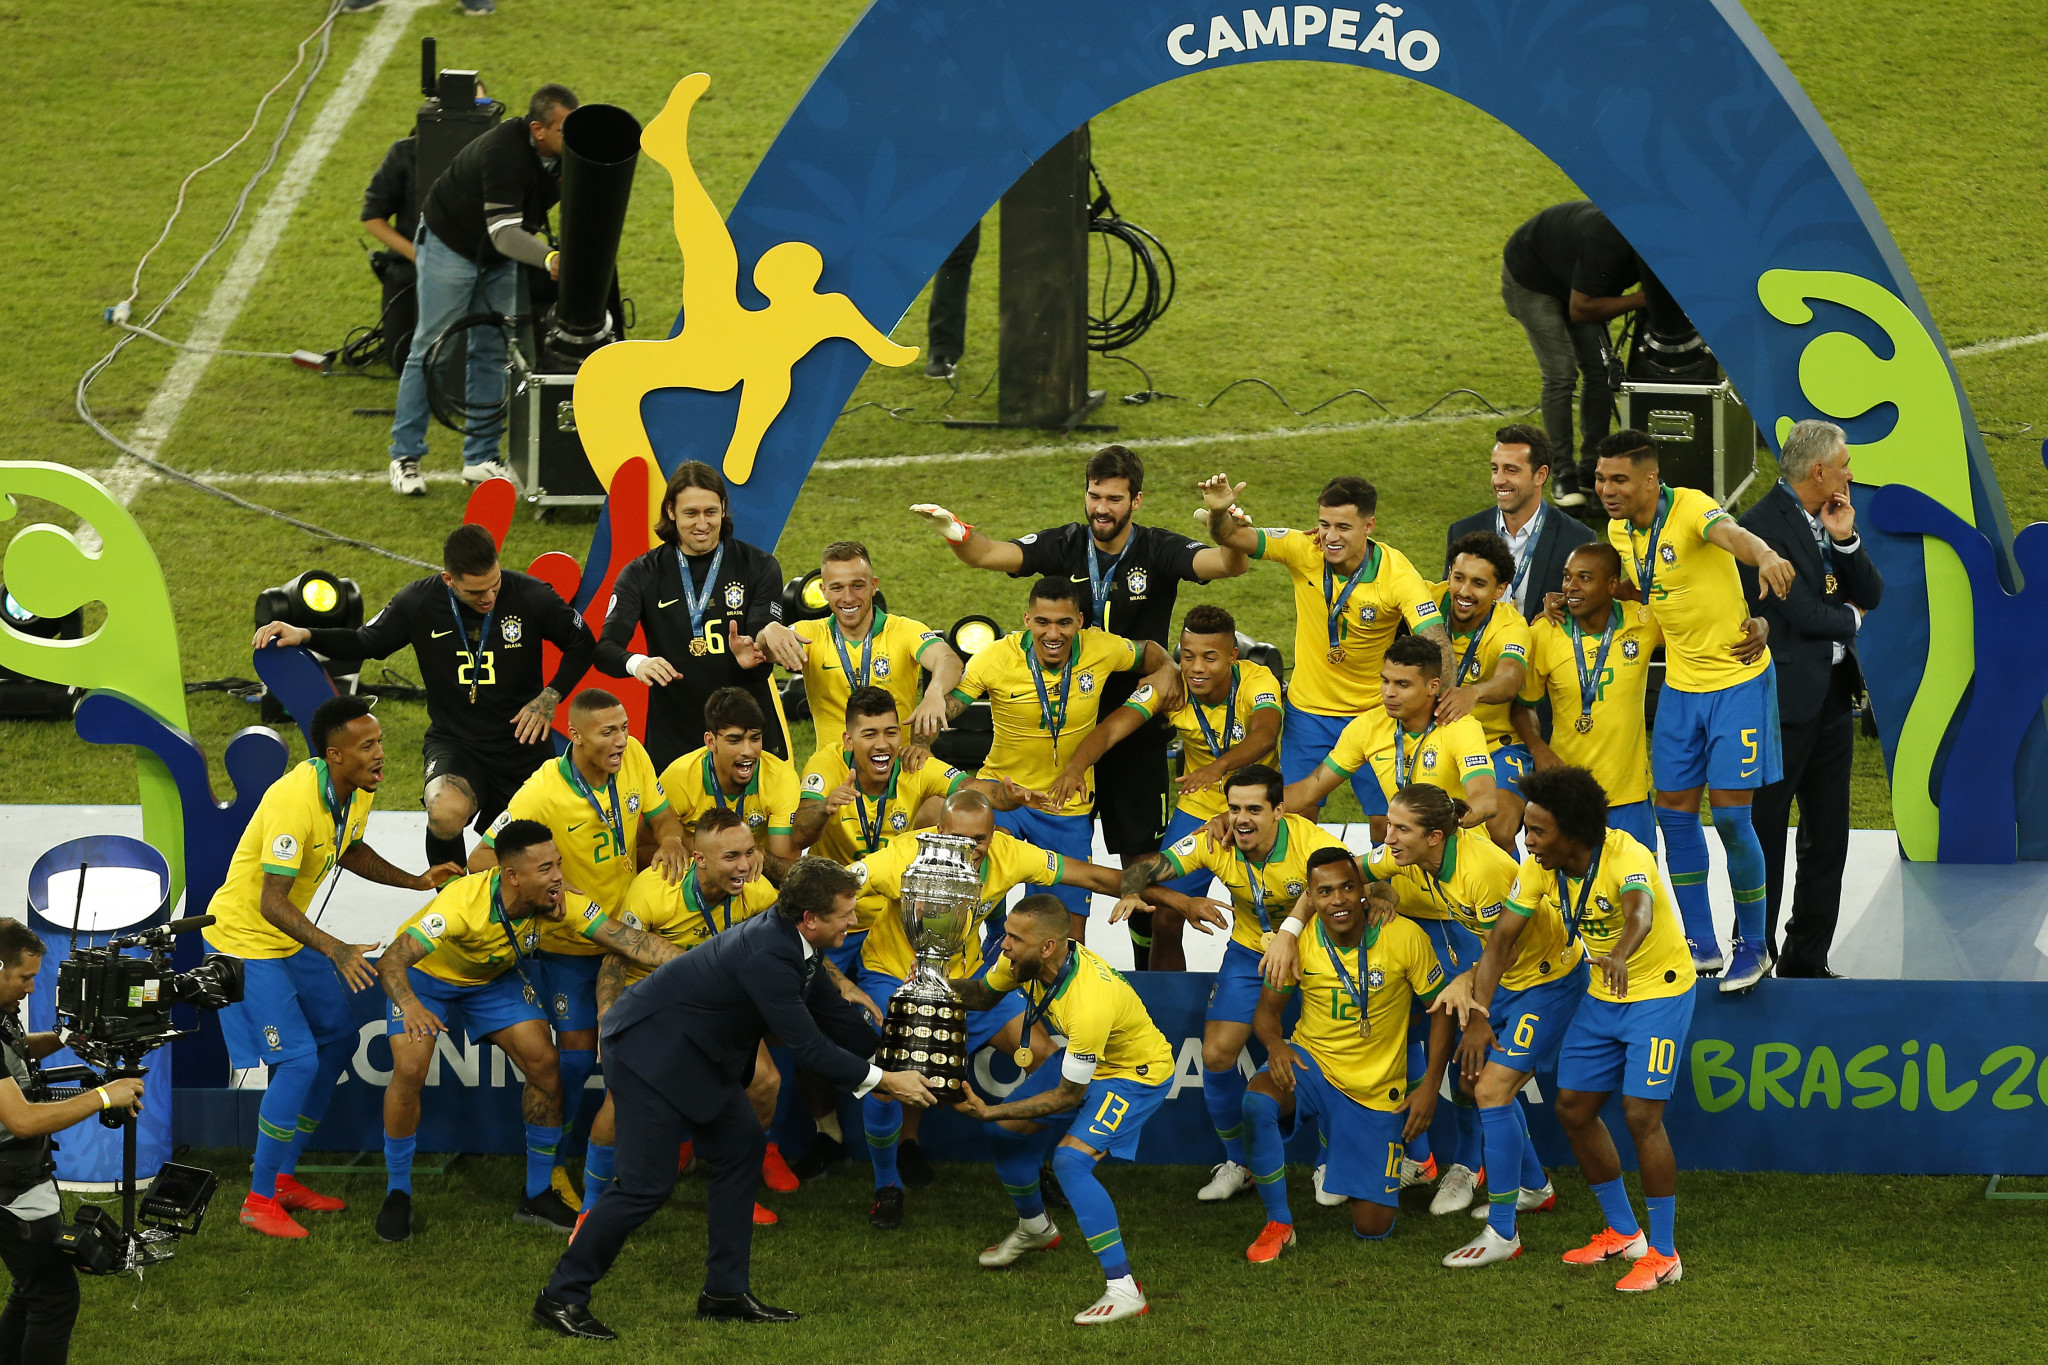 Brazil is set to stage the Copa América for the second successive time after playing host in 2019 when the nation won the title ©Getty Images